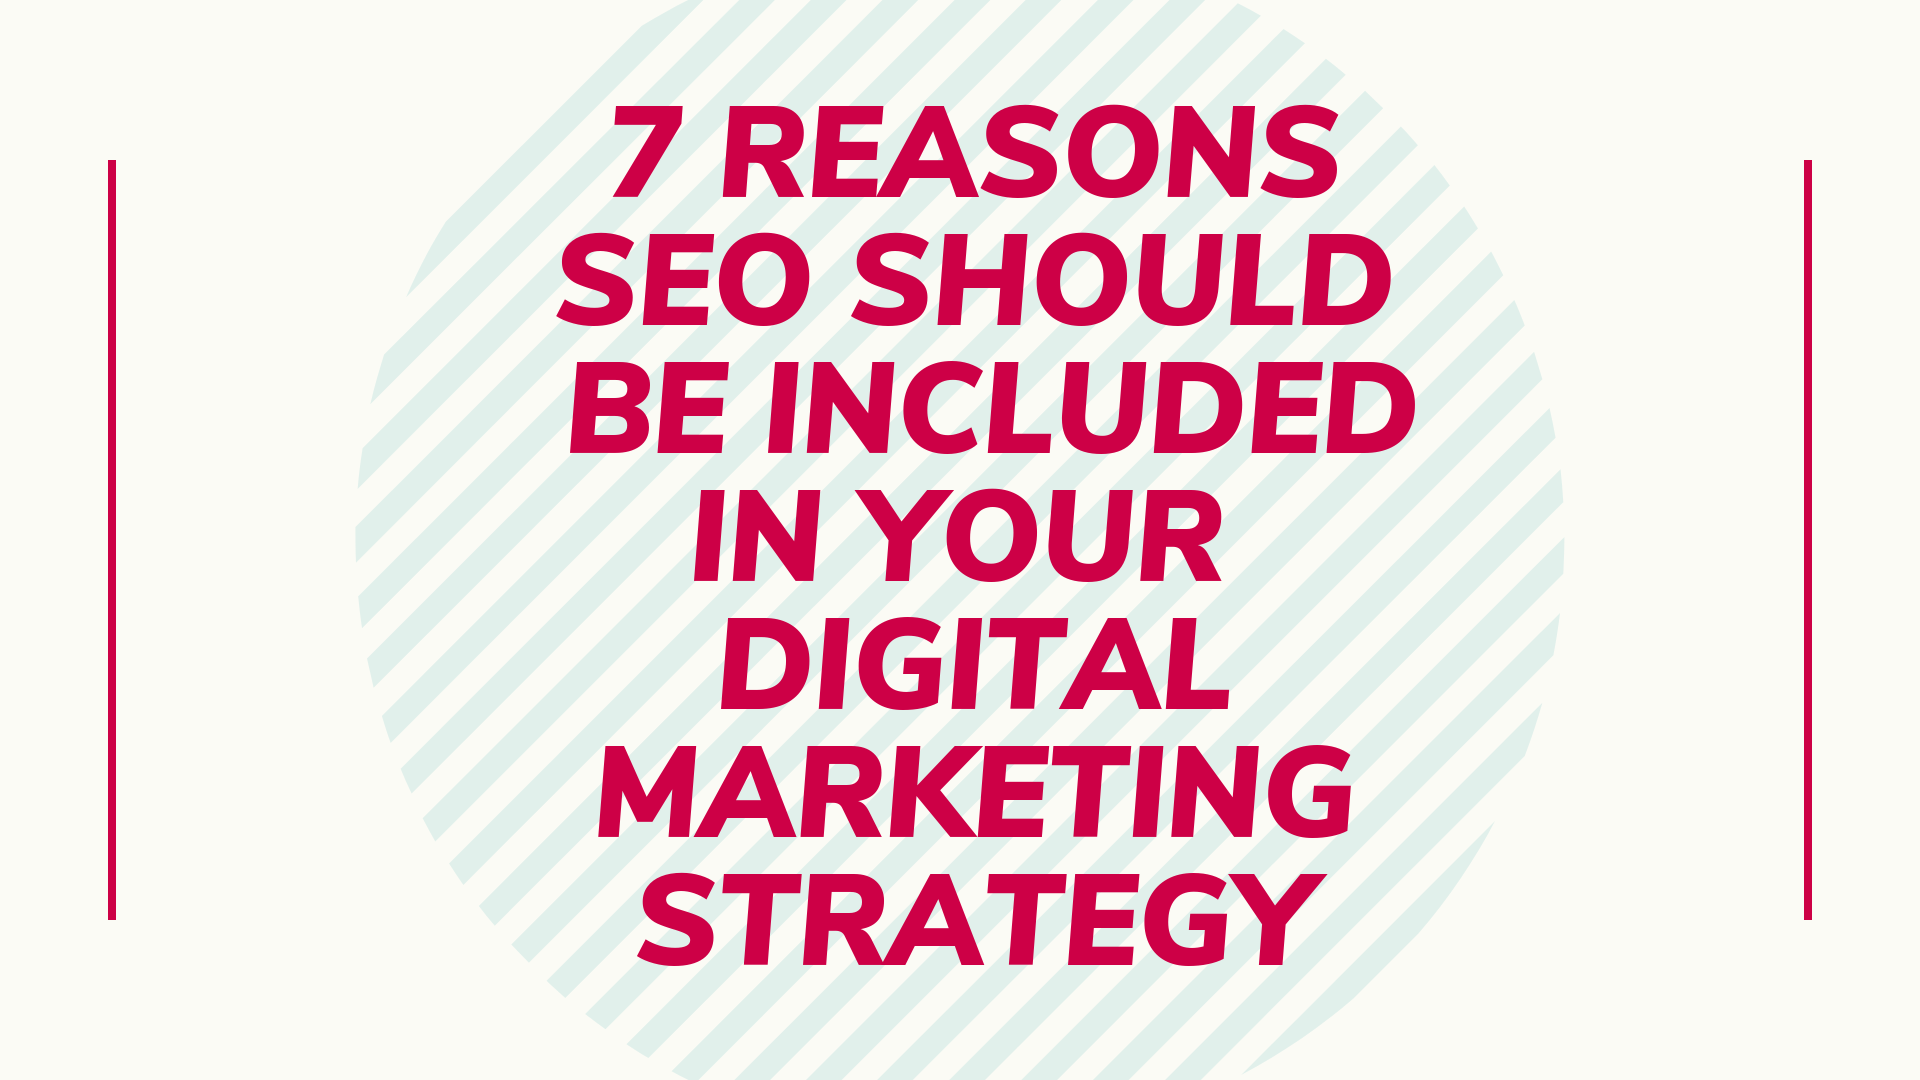 7 Reasons SEO Should be Included in Your Digital Marketing Strategy